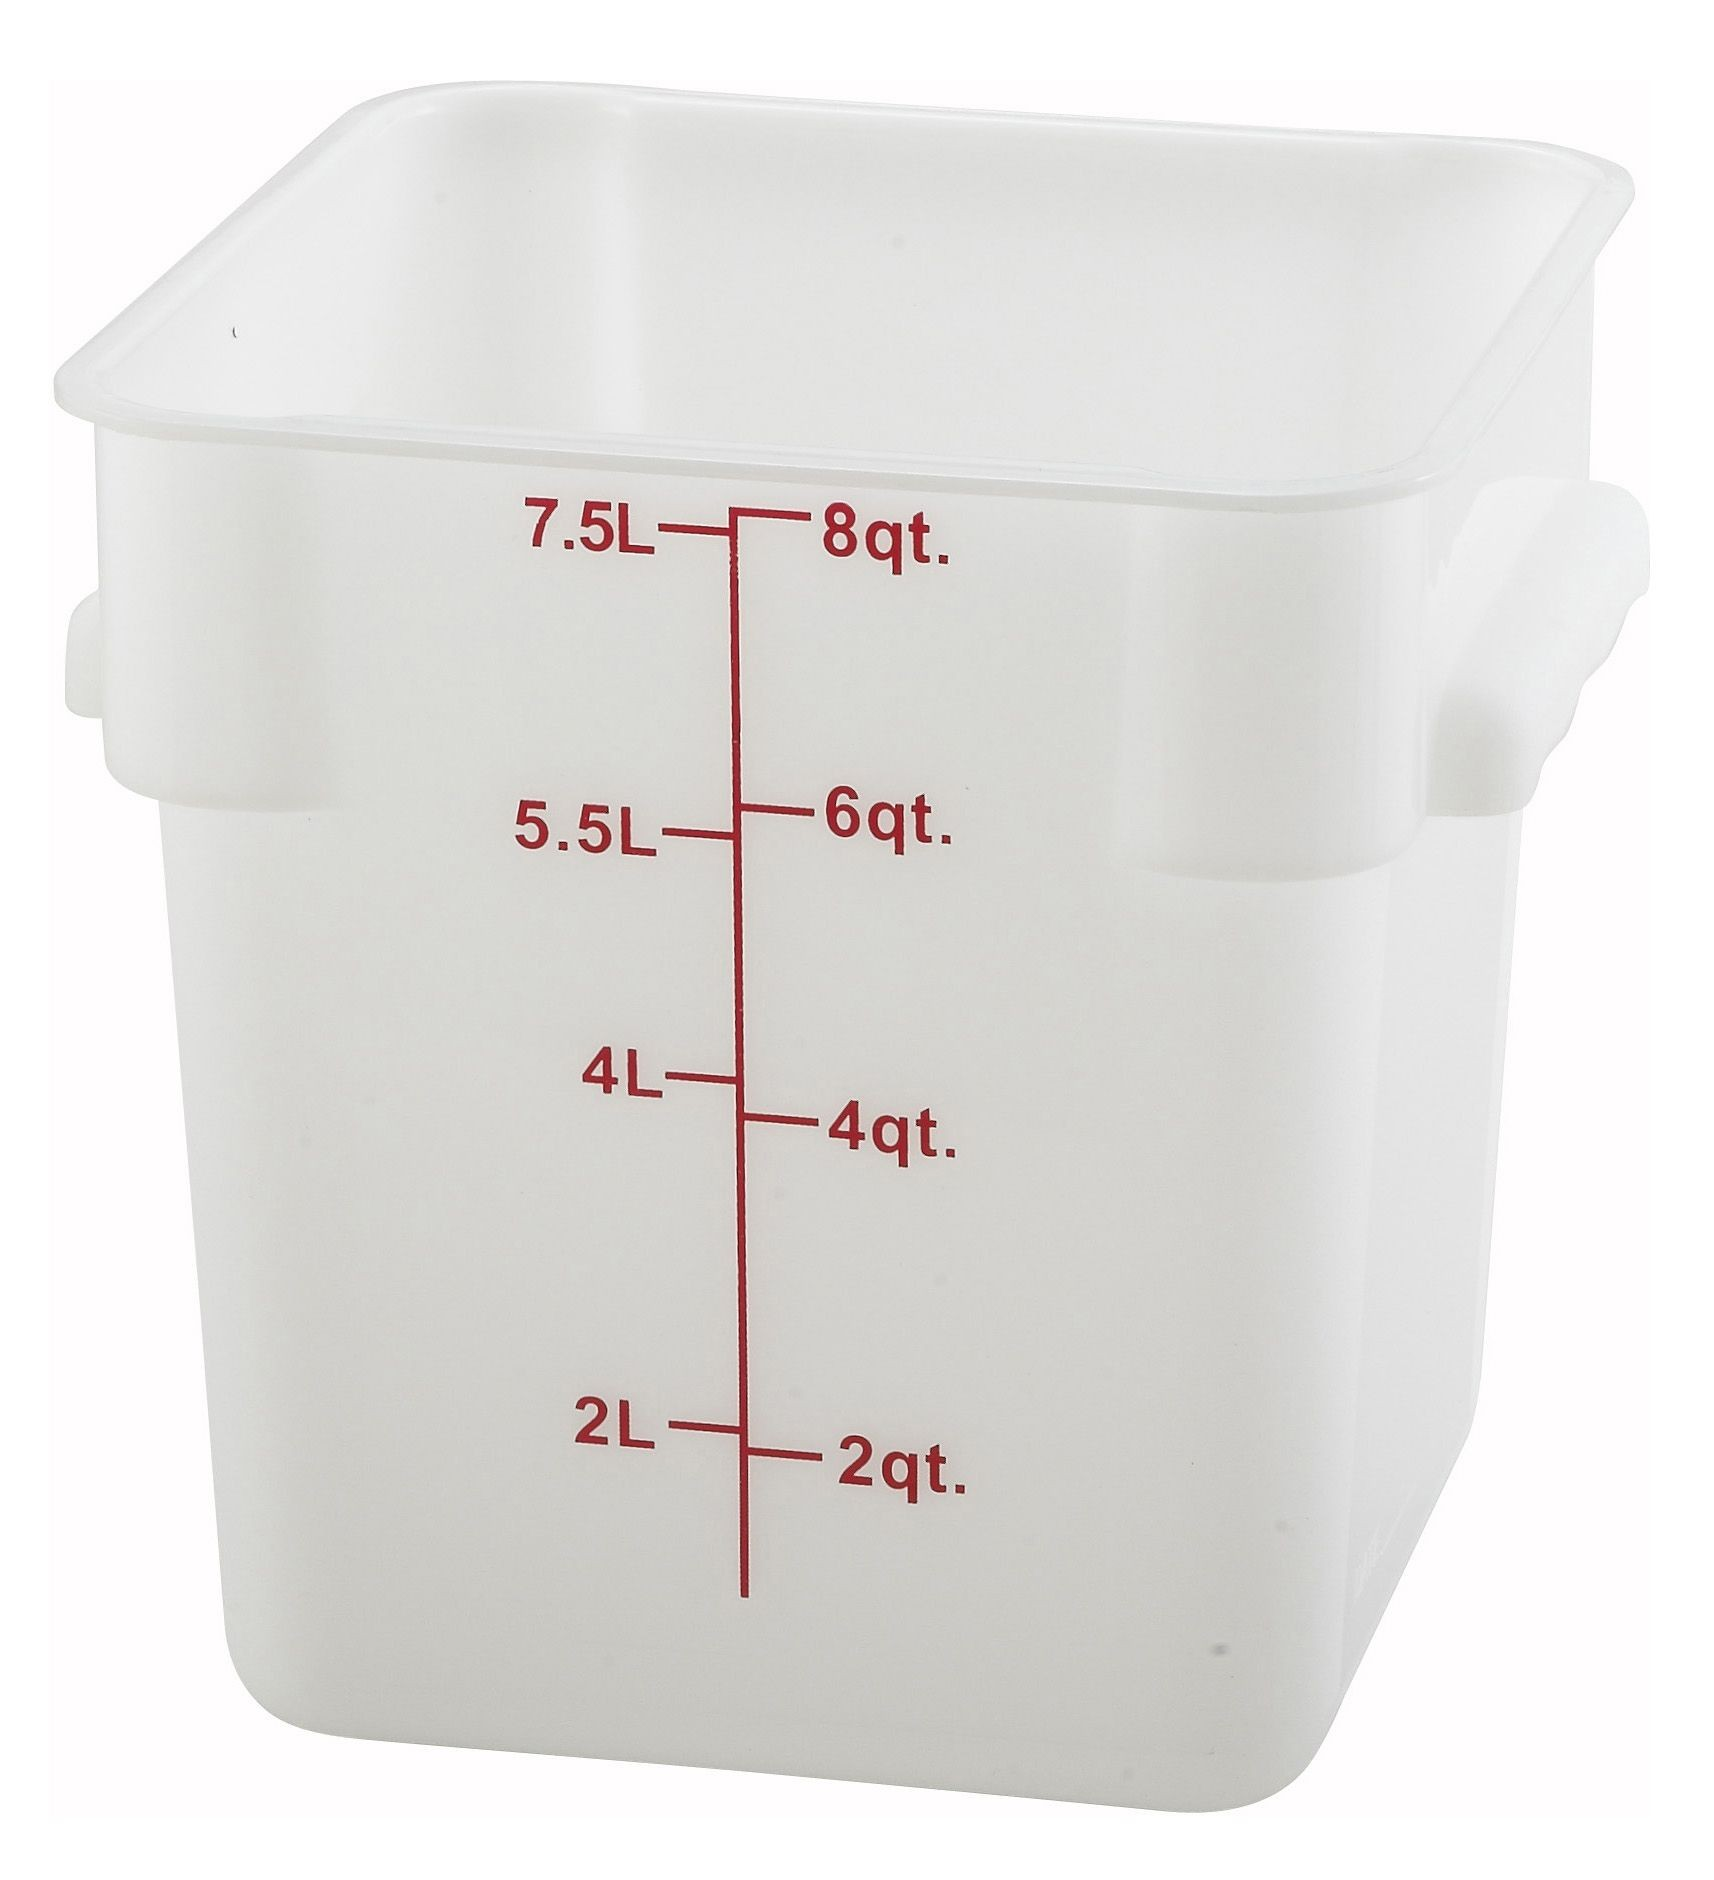 Winco PESC-8 White 8 Qt. Square Food Storage Container